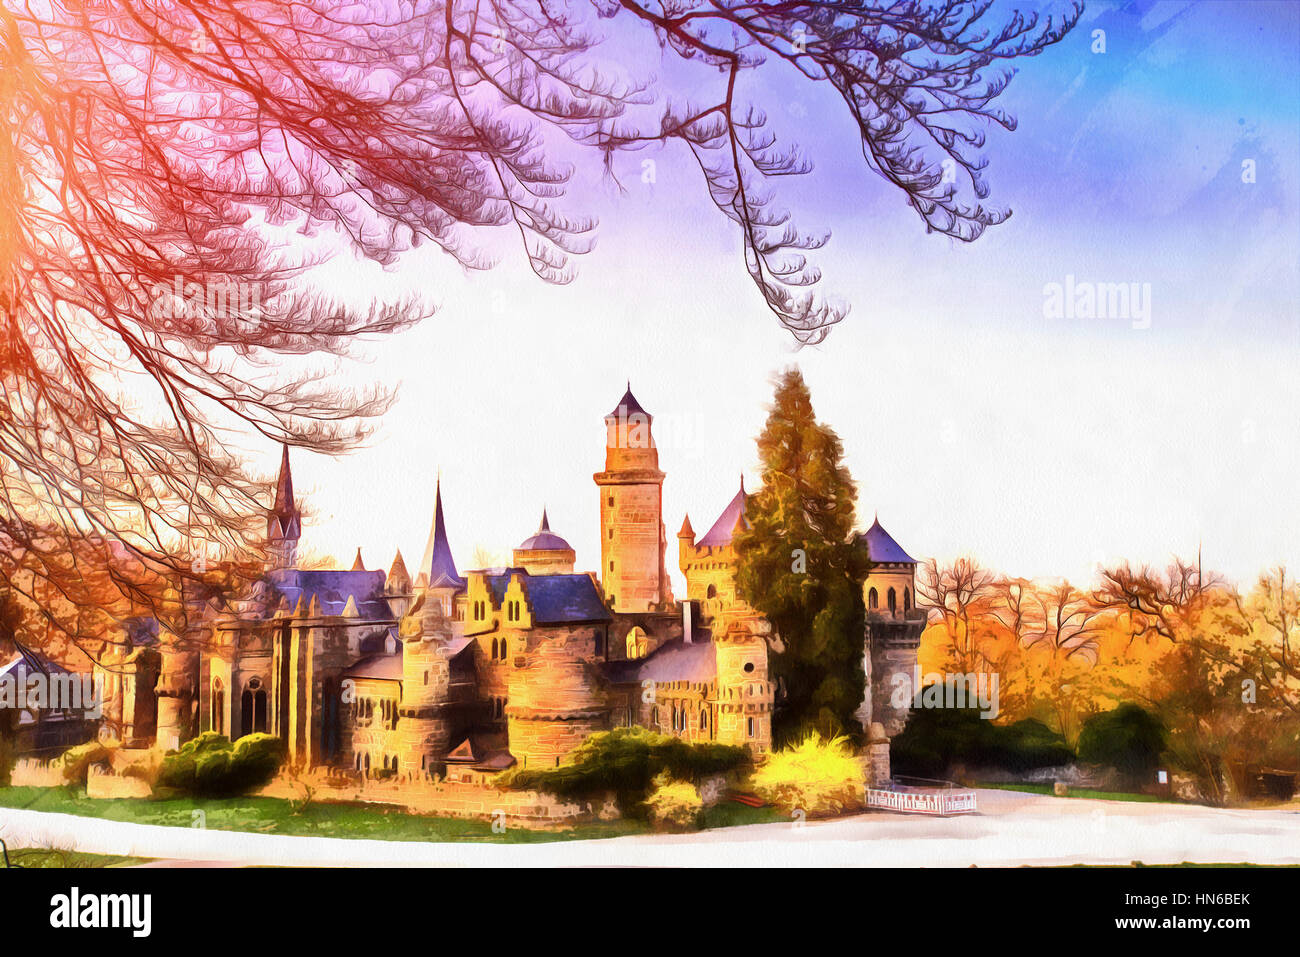 Antique castle. The works in the style of watercolor painting - Stock Image